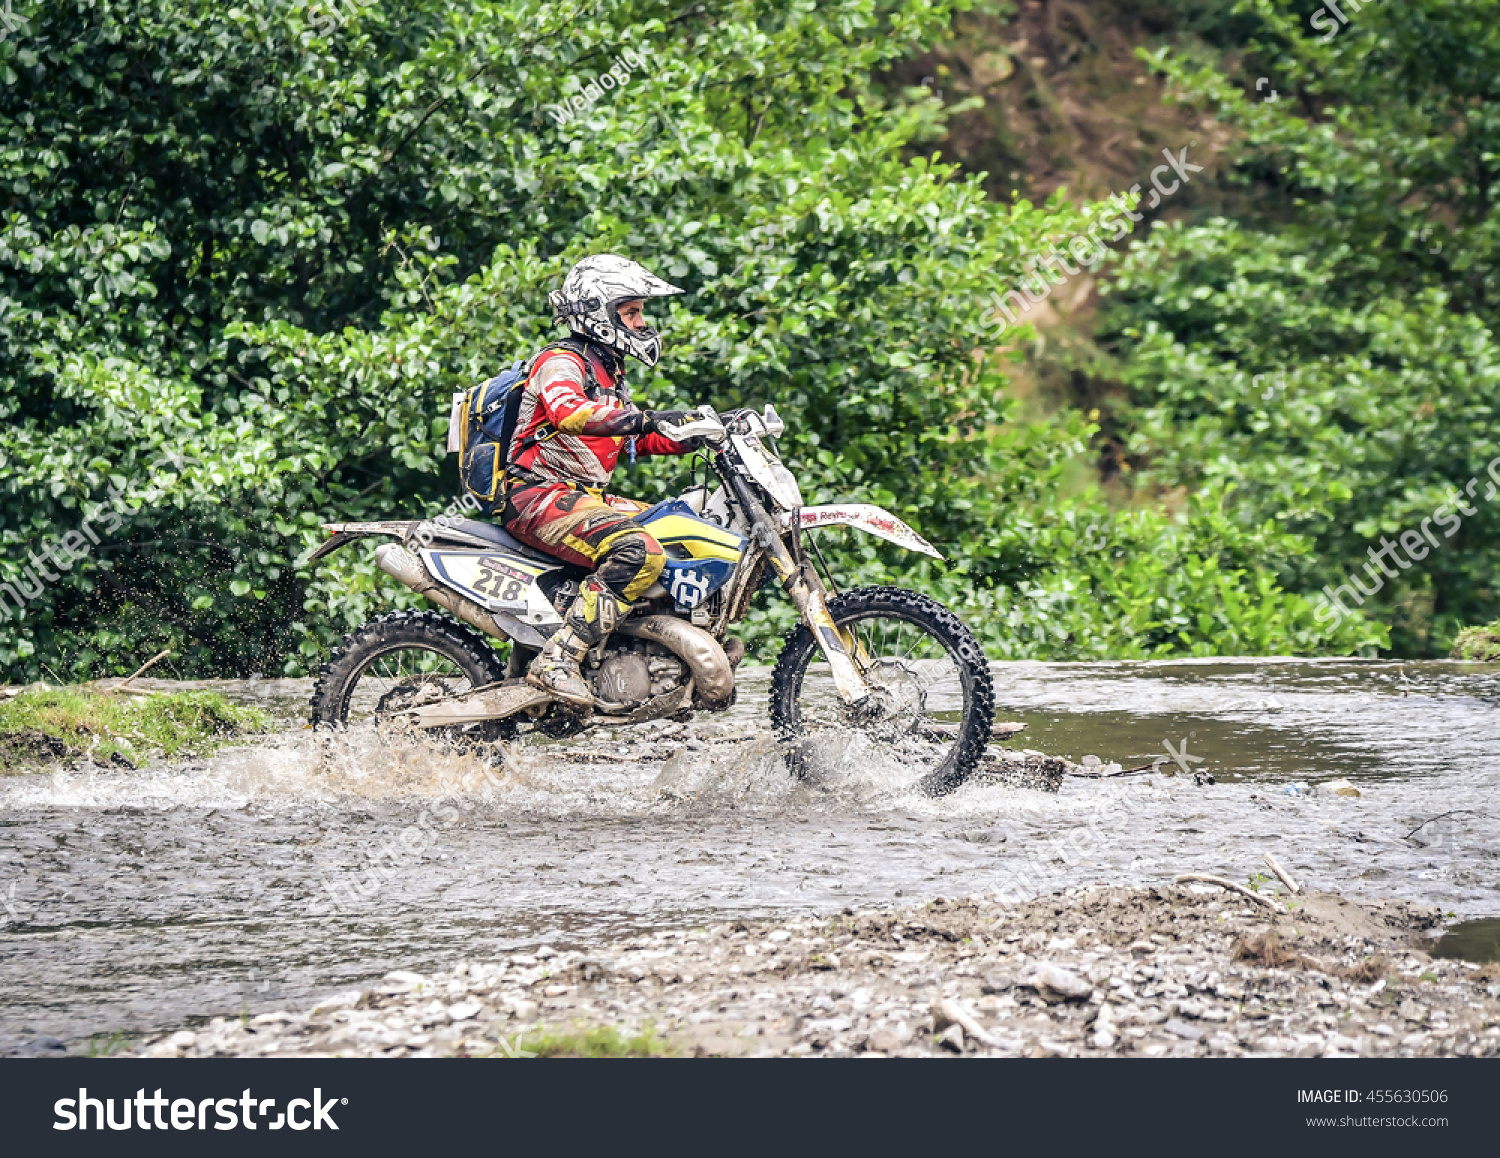 SIBIU ROMANIA JULY 16 Jurgen Engelhart competing in Red Bull ROMANIACS Hard Enduro Rally with a KTM motorcycle The hardest enduro rally in the world July 12-16 2016 in Sibiu Romania